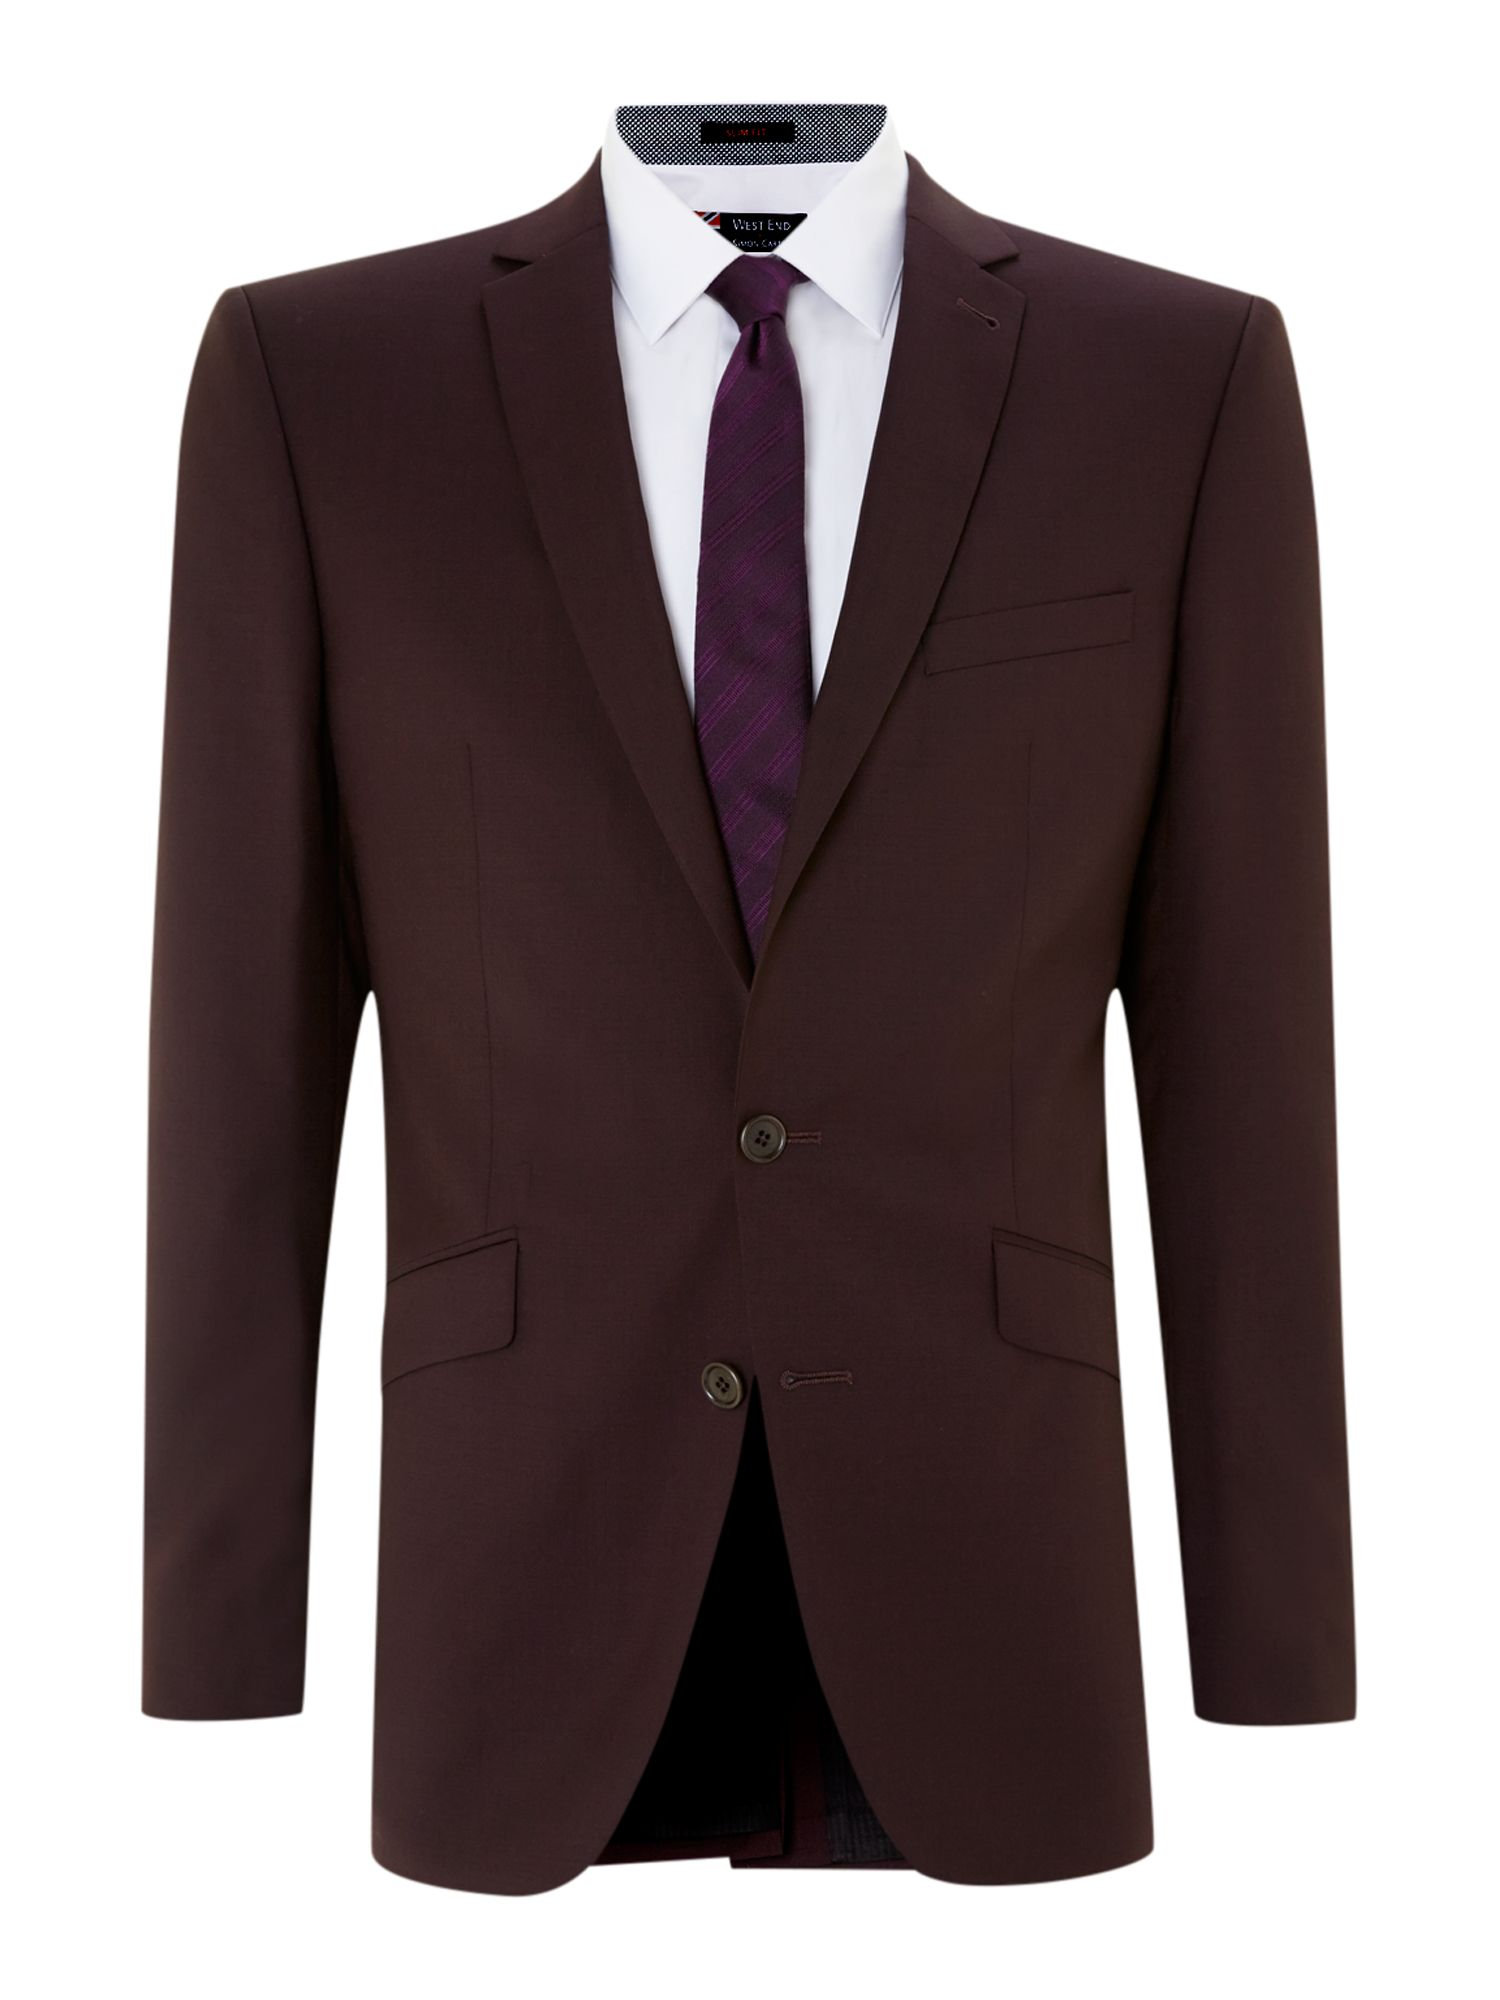 Tonic slim fit suit